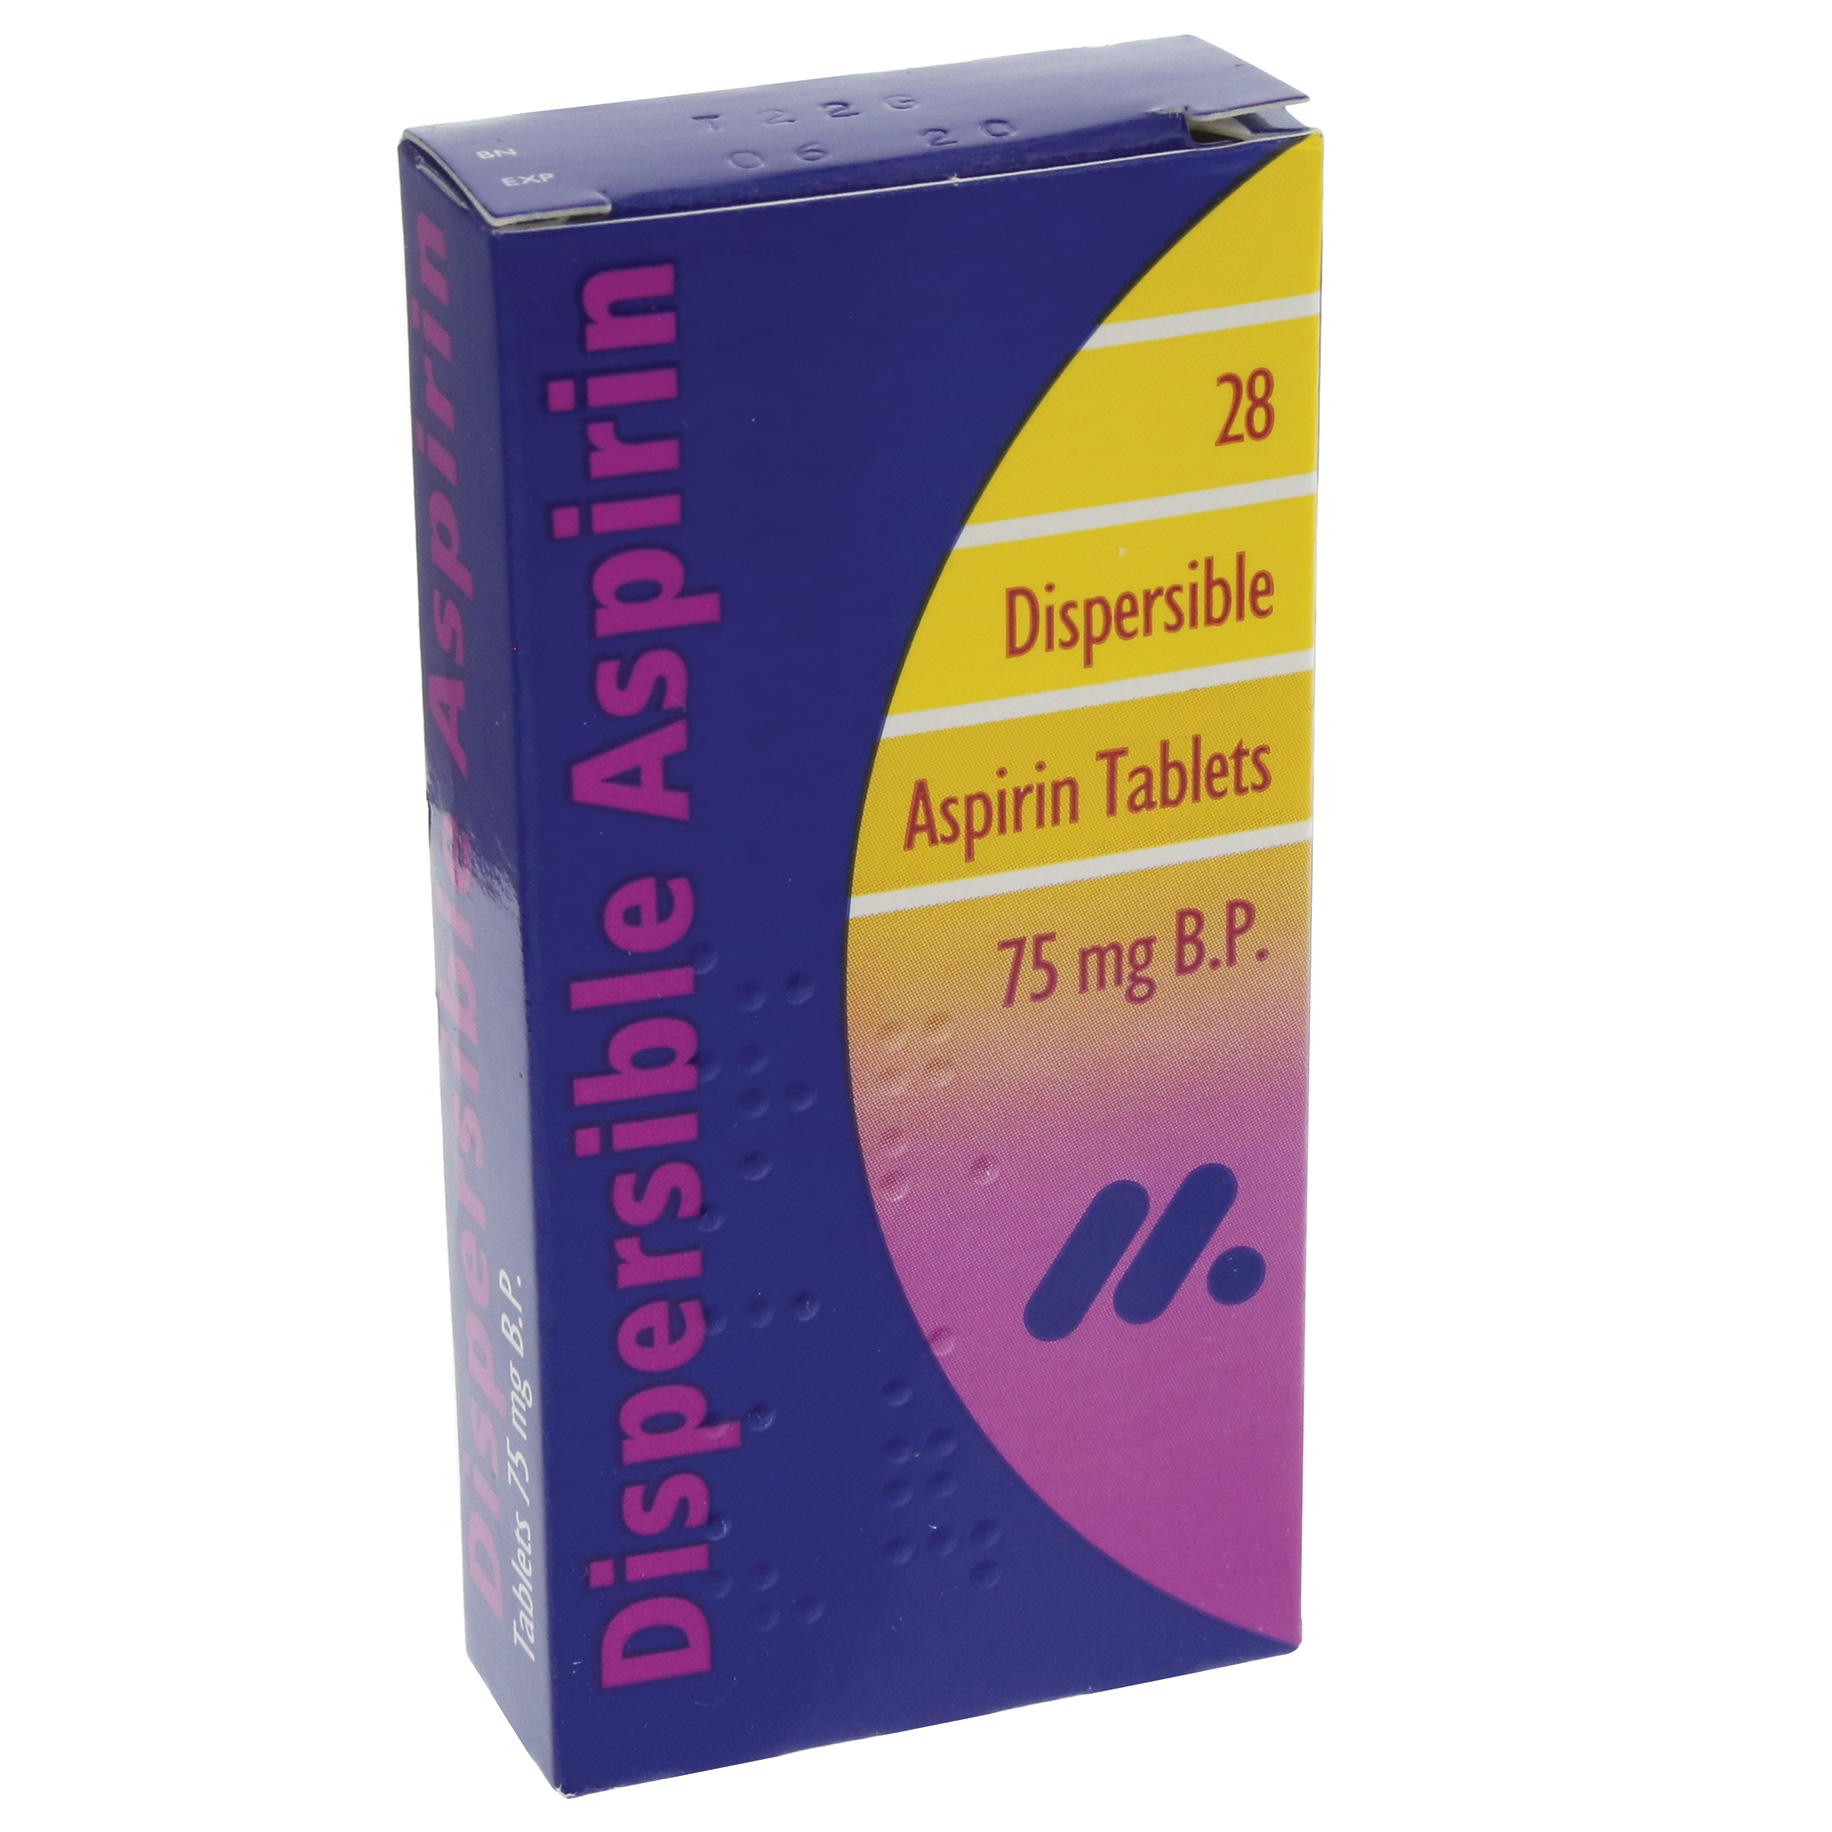 Aspirin Tablets Dispersable 75mg